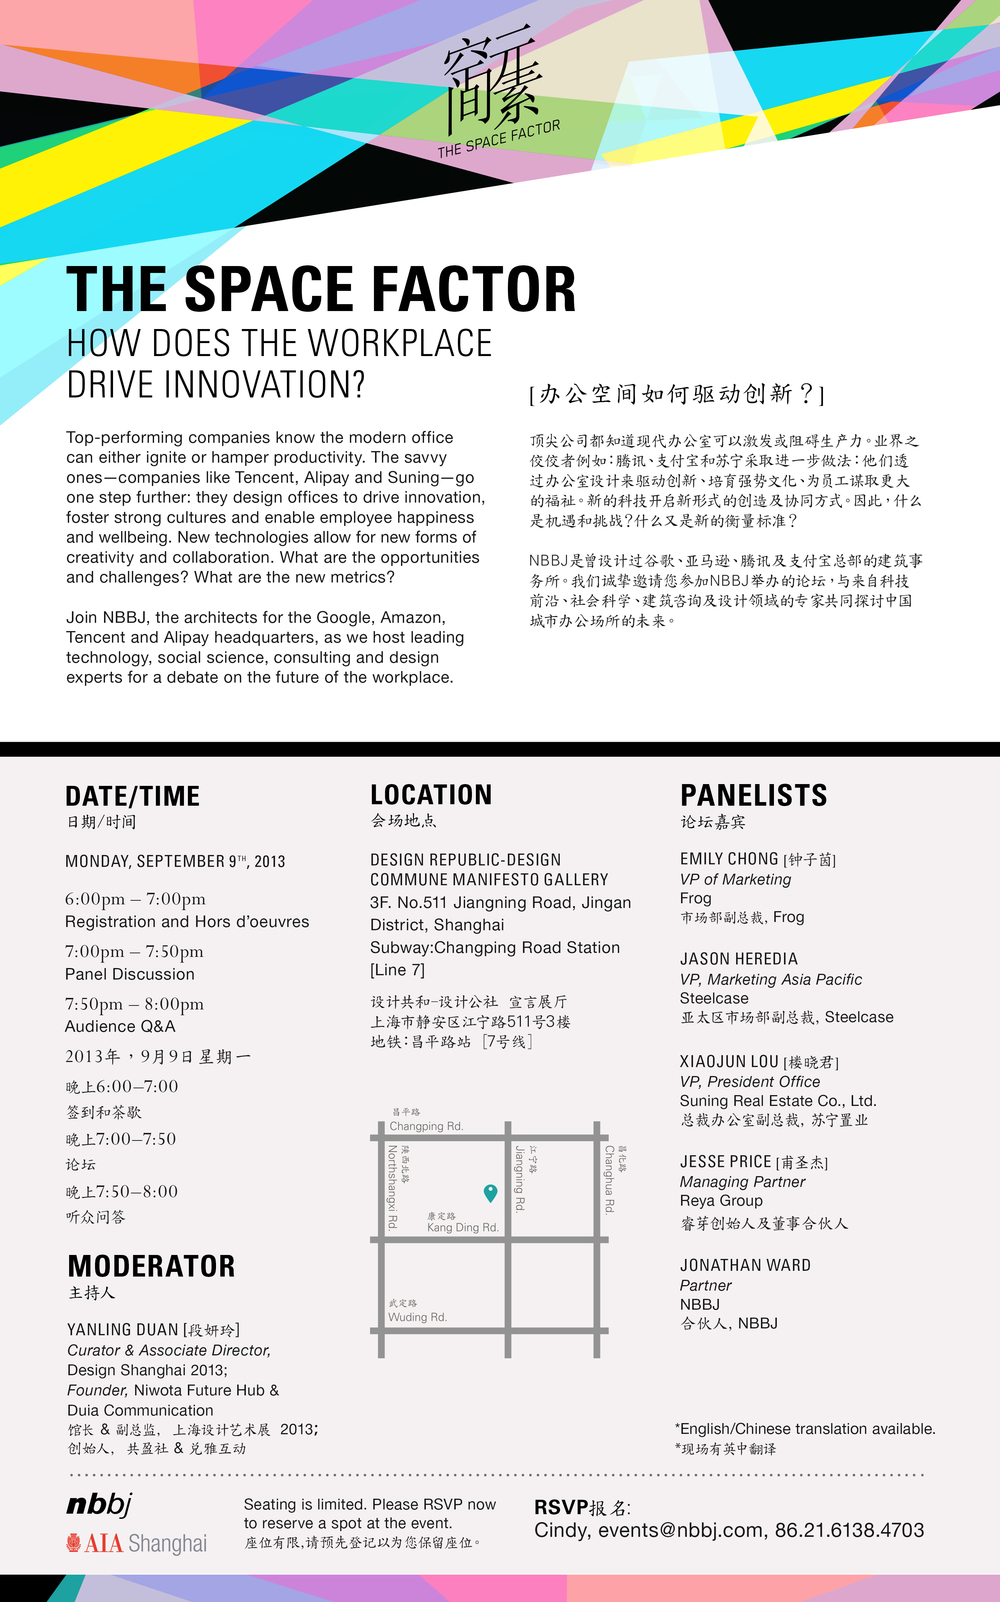 NBBJ AIA Shanghai Workplace and Innovation.jpg